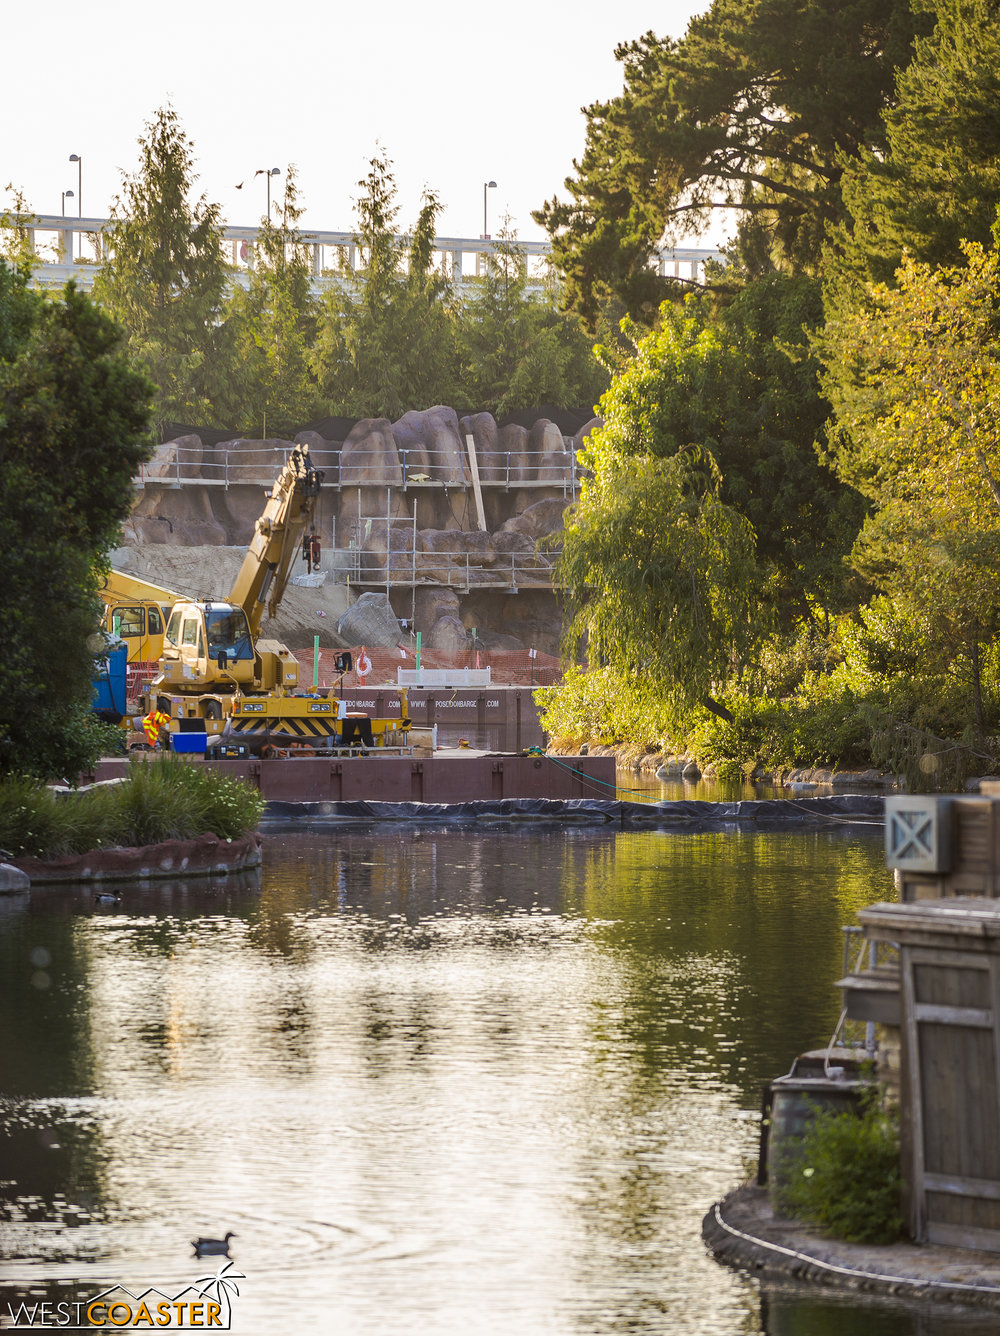 Here's a better angle of the Rivers of America on both sides of the dam--now both watery again!